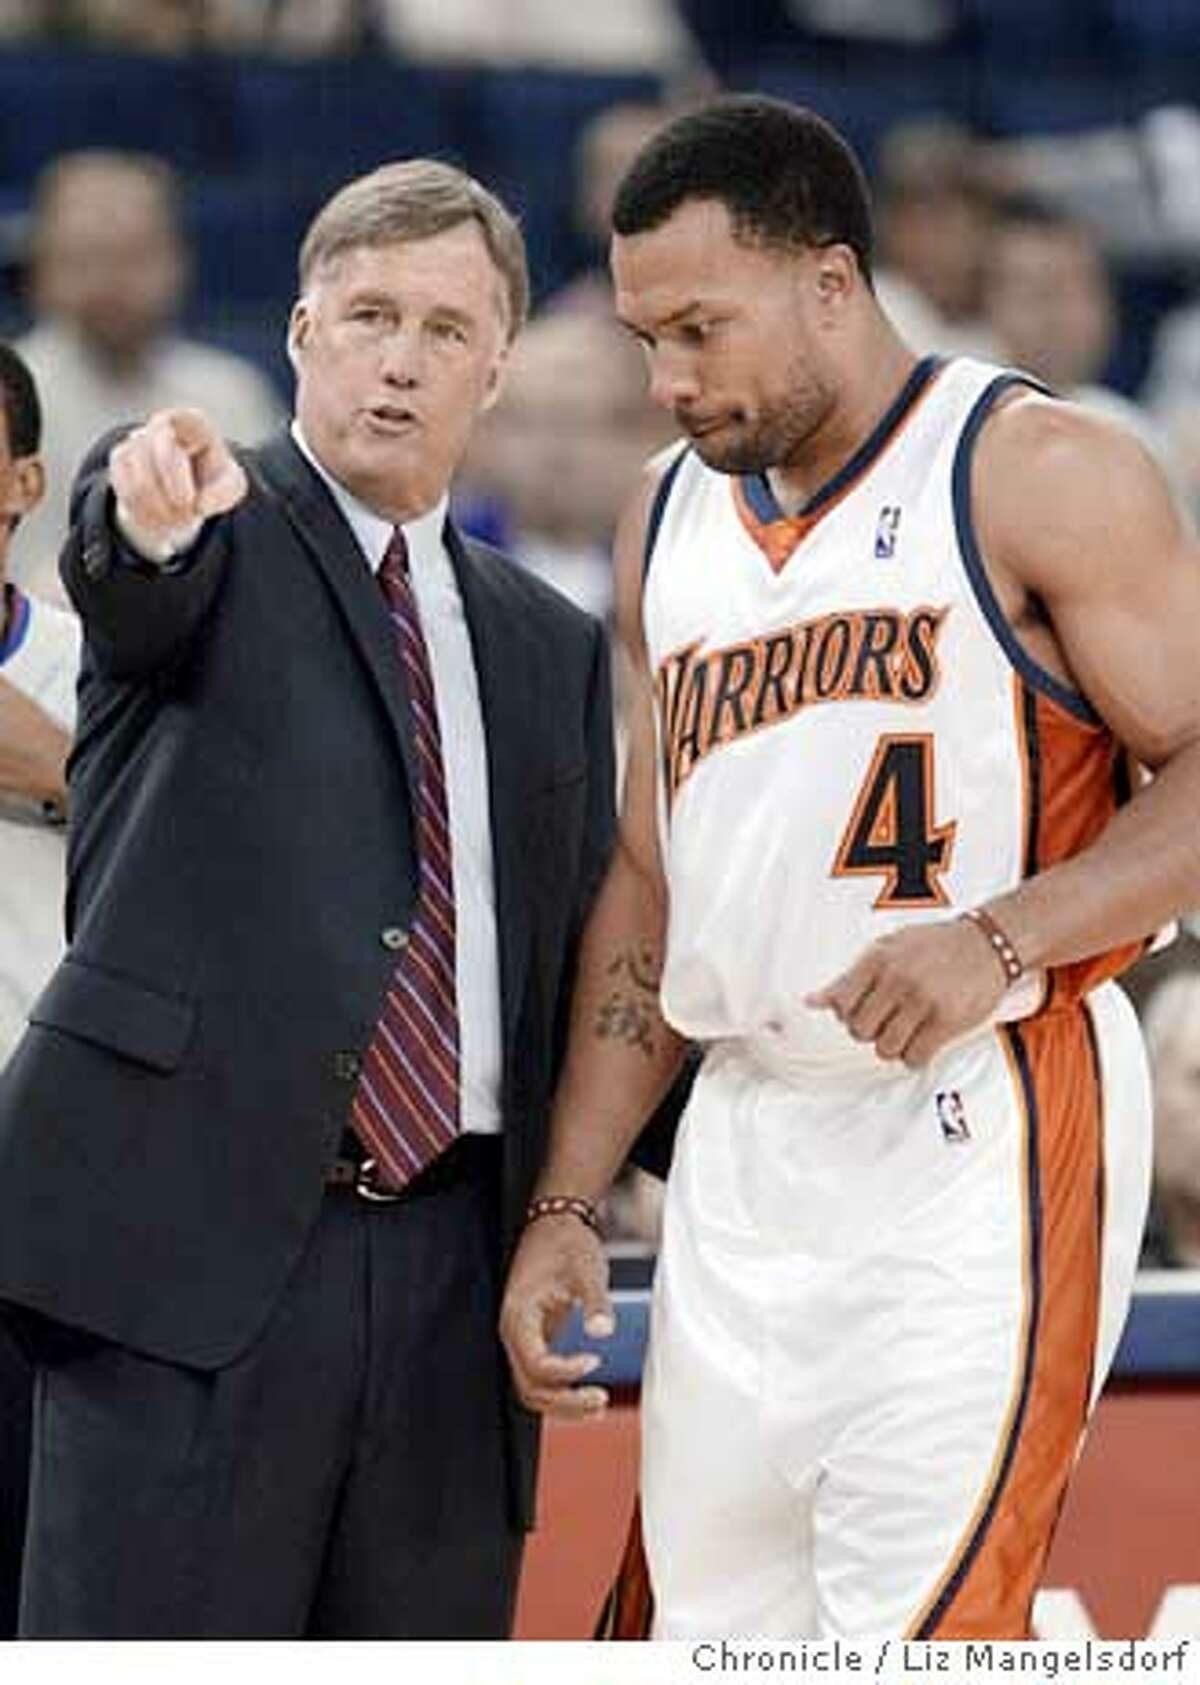 46FB0274.JPG Event on 10/14/04 in Oakland. warrior new head coach Mike Montgomery talks with Derek Fisher during a break in the action in the 2nd quarter. Golden State Warriors v Portland Trailblazers in preseason action at the Oakland Coliseum. Liz Mangelsdorf / The Chronicle